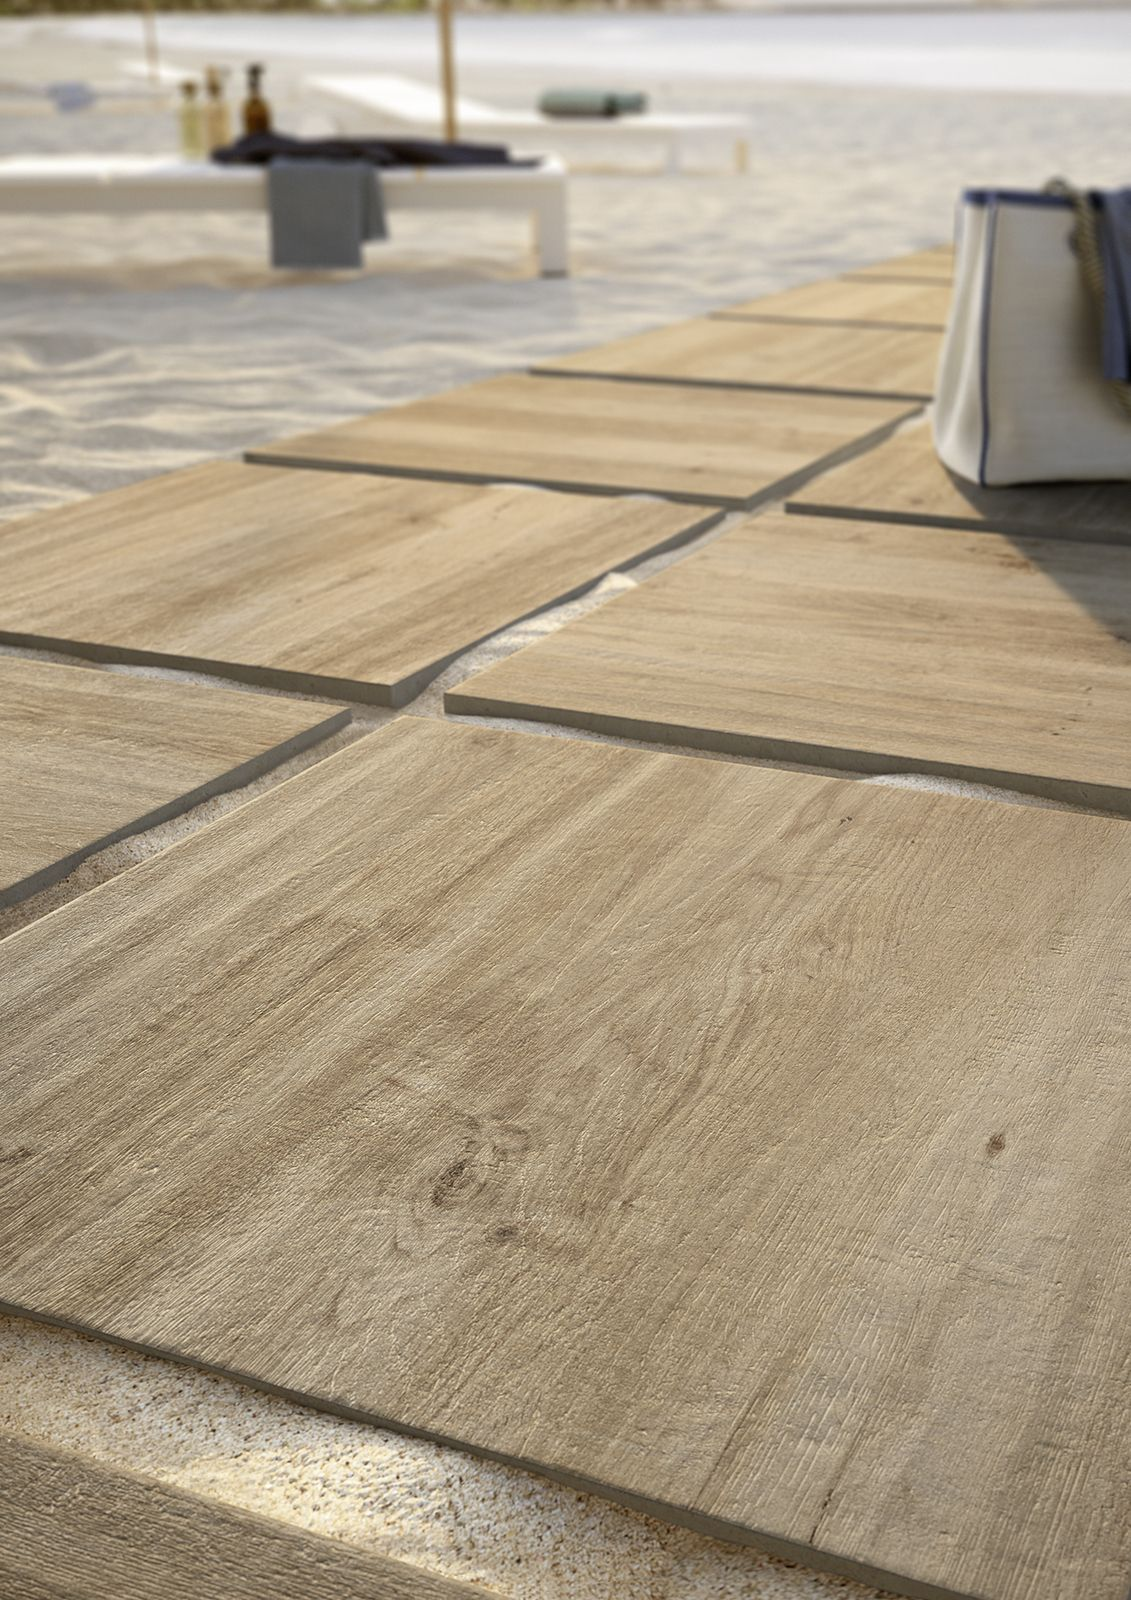 Terrasse Holz Oder Fliesen Treverkhome20 Outdoor Wood Effect Thick Tiles Marazzi